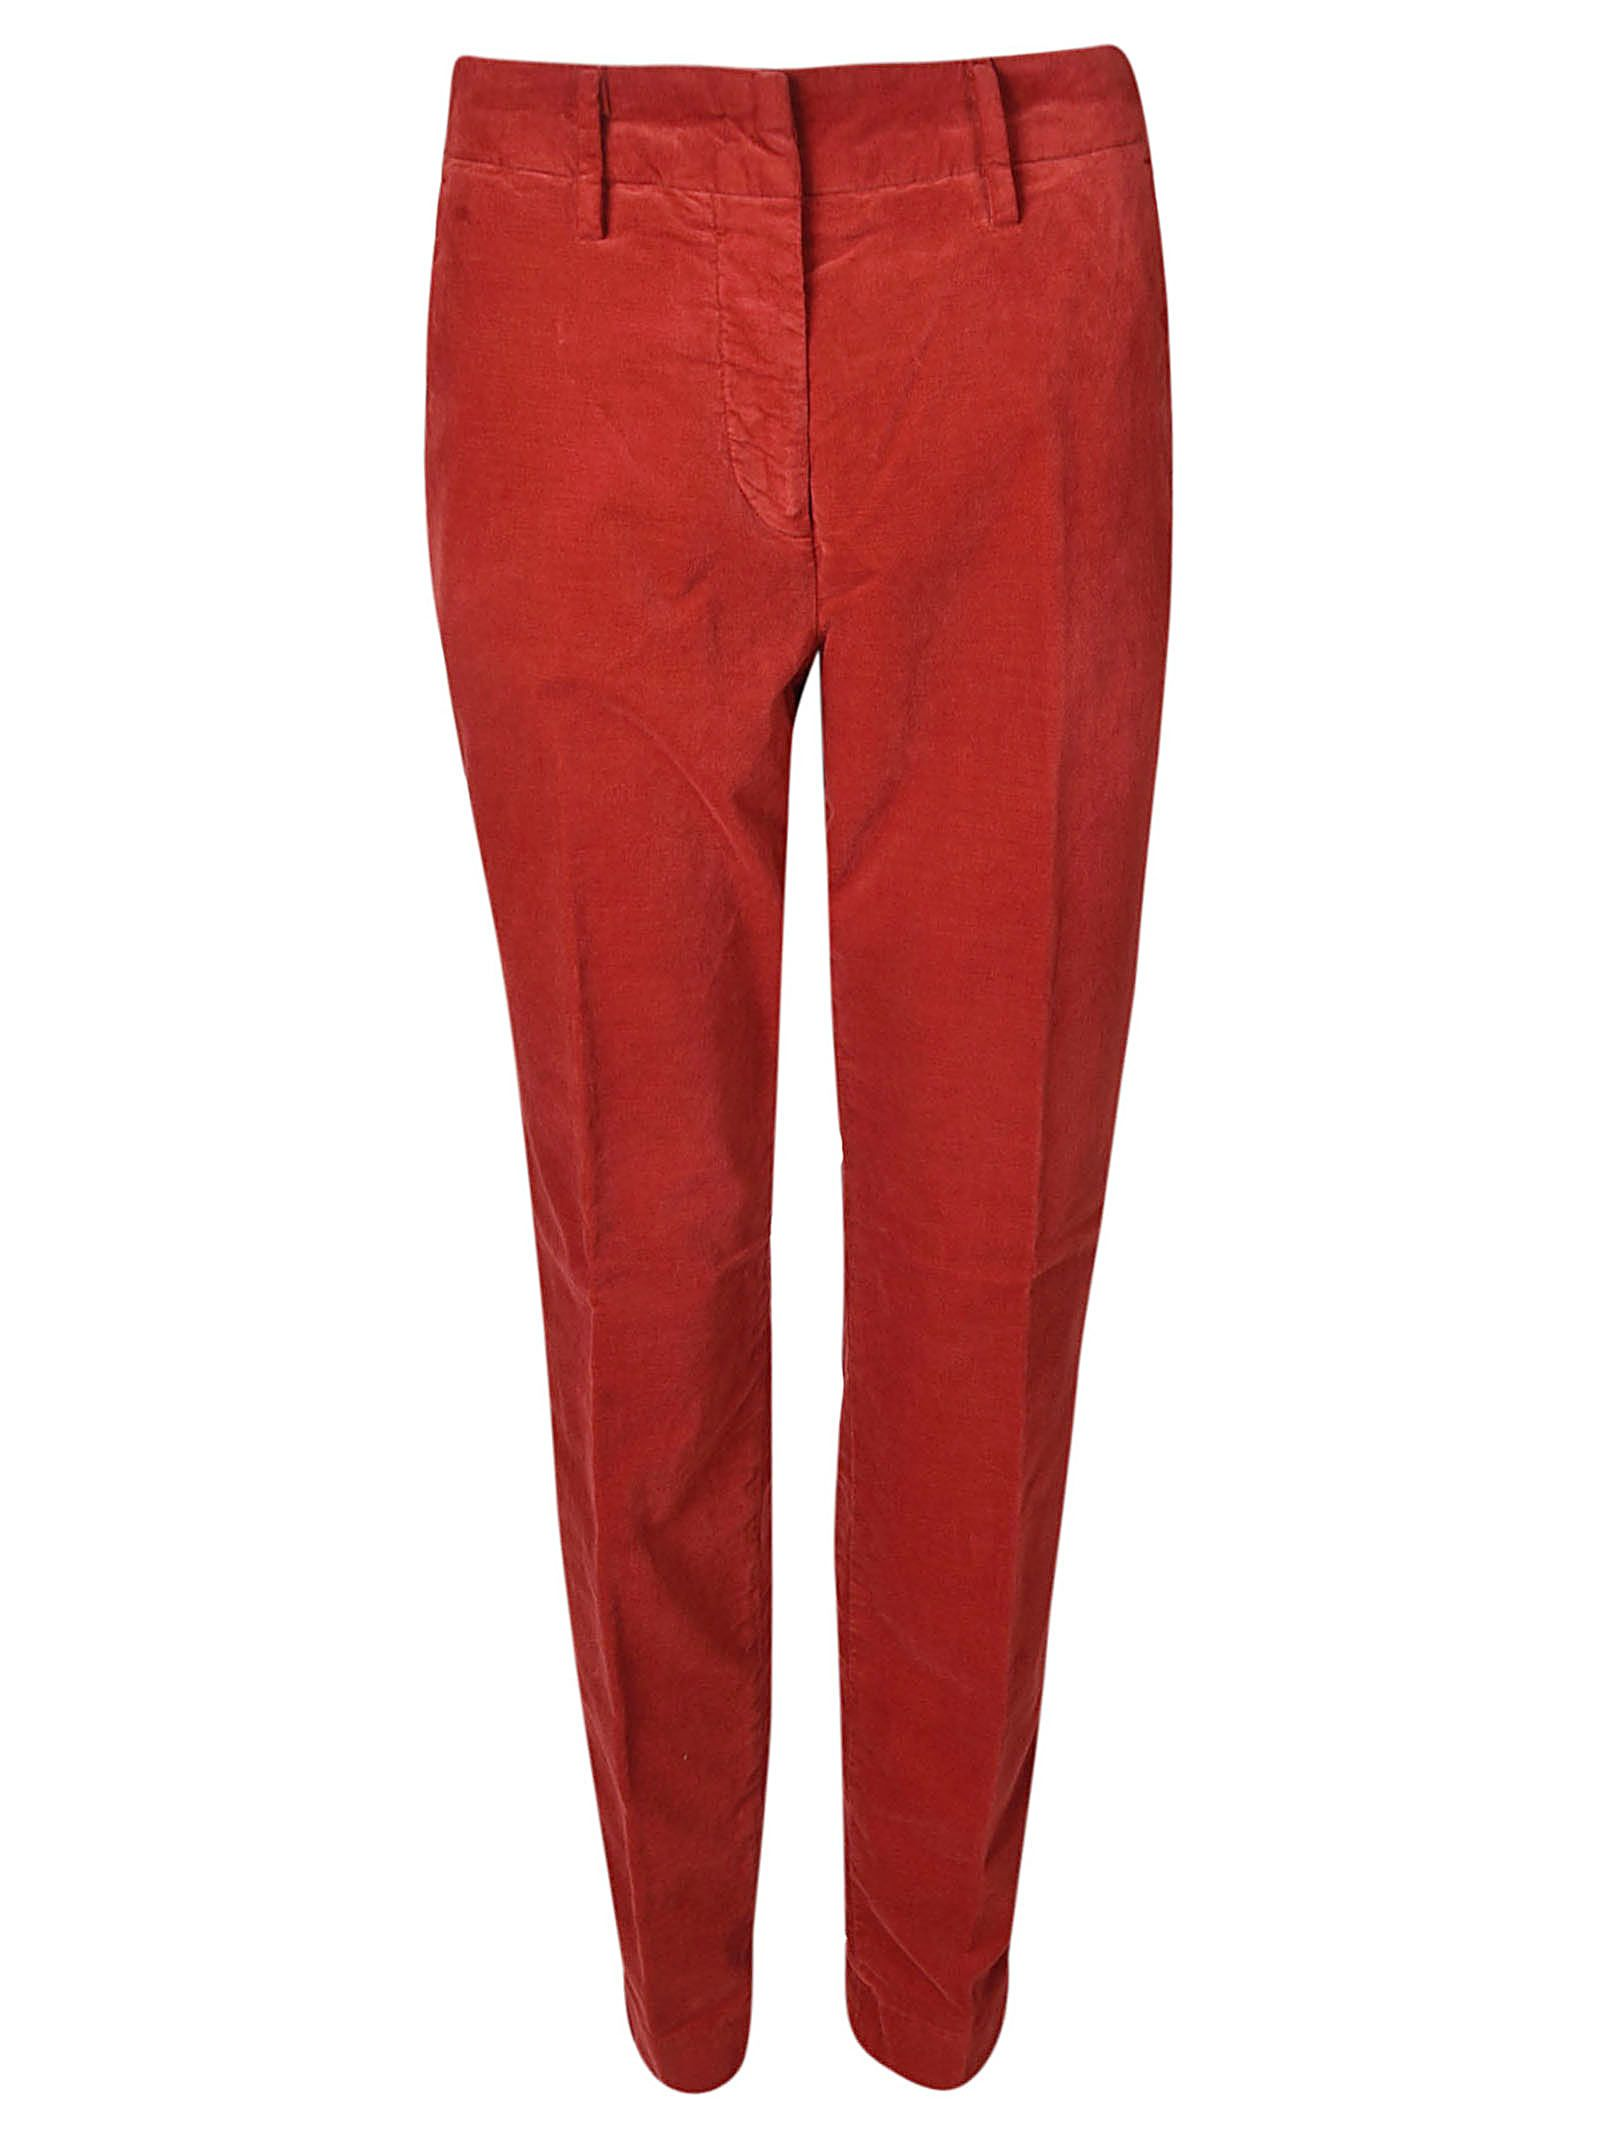 MASON'S Chino Trousers in Red